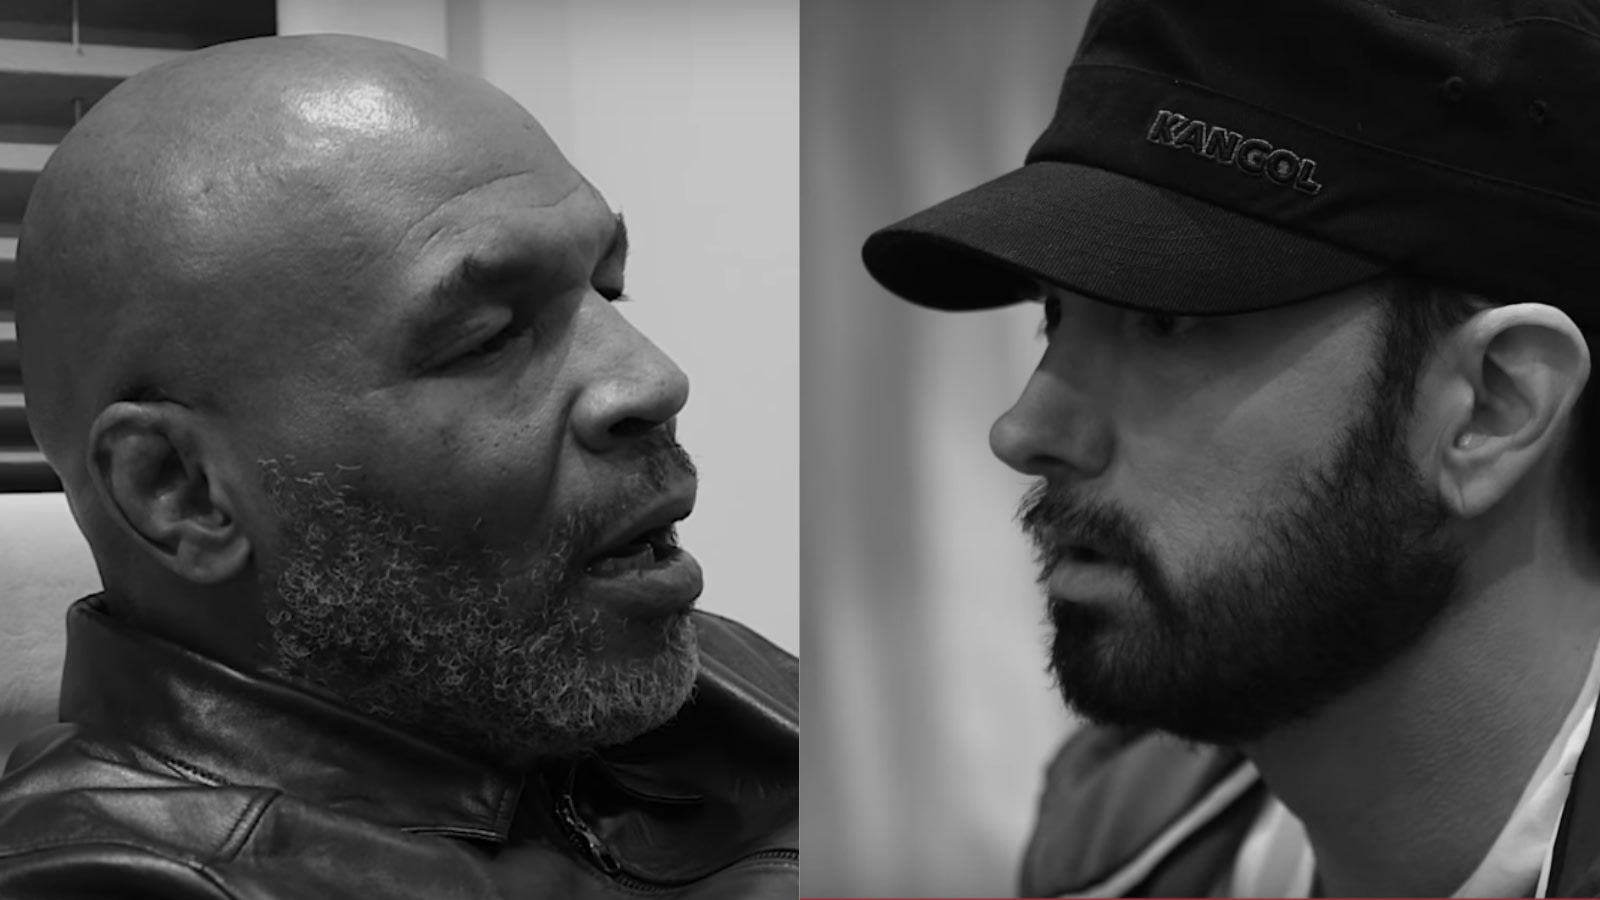 Mike Tyson Weirdly Remarks That Eminem Knows 'What It's Like To Be A N***a'